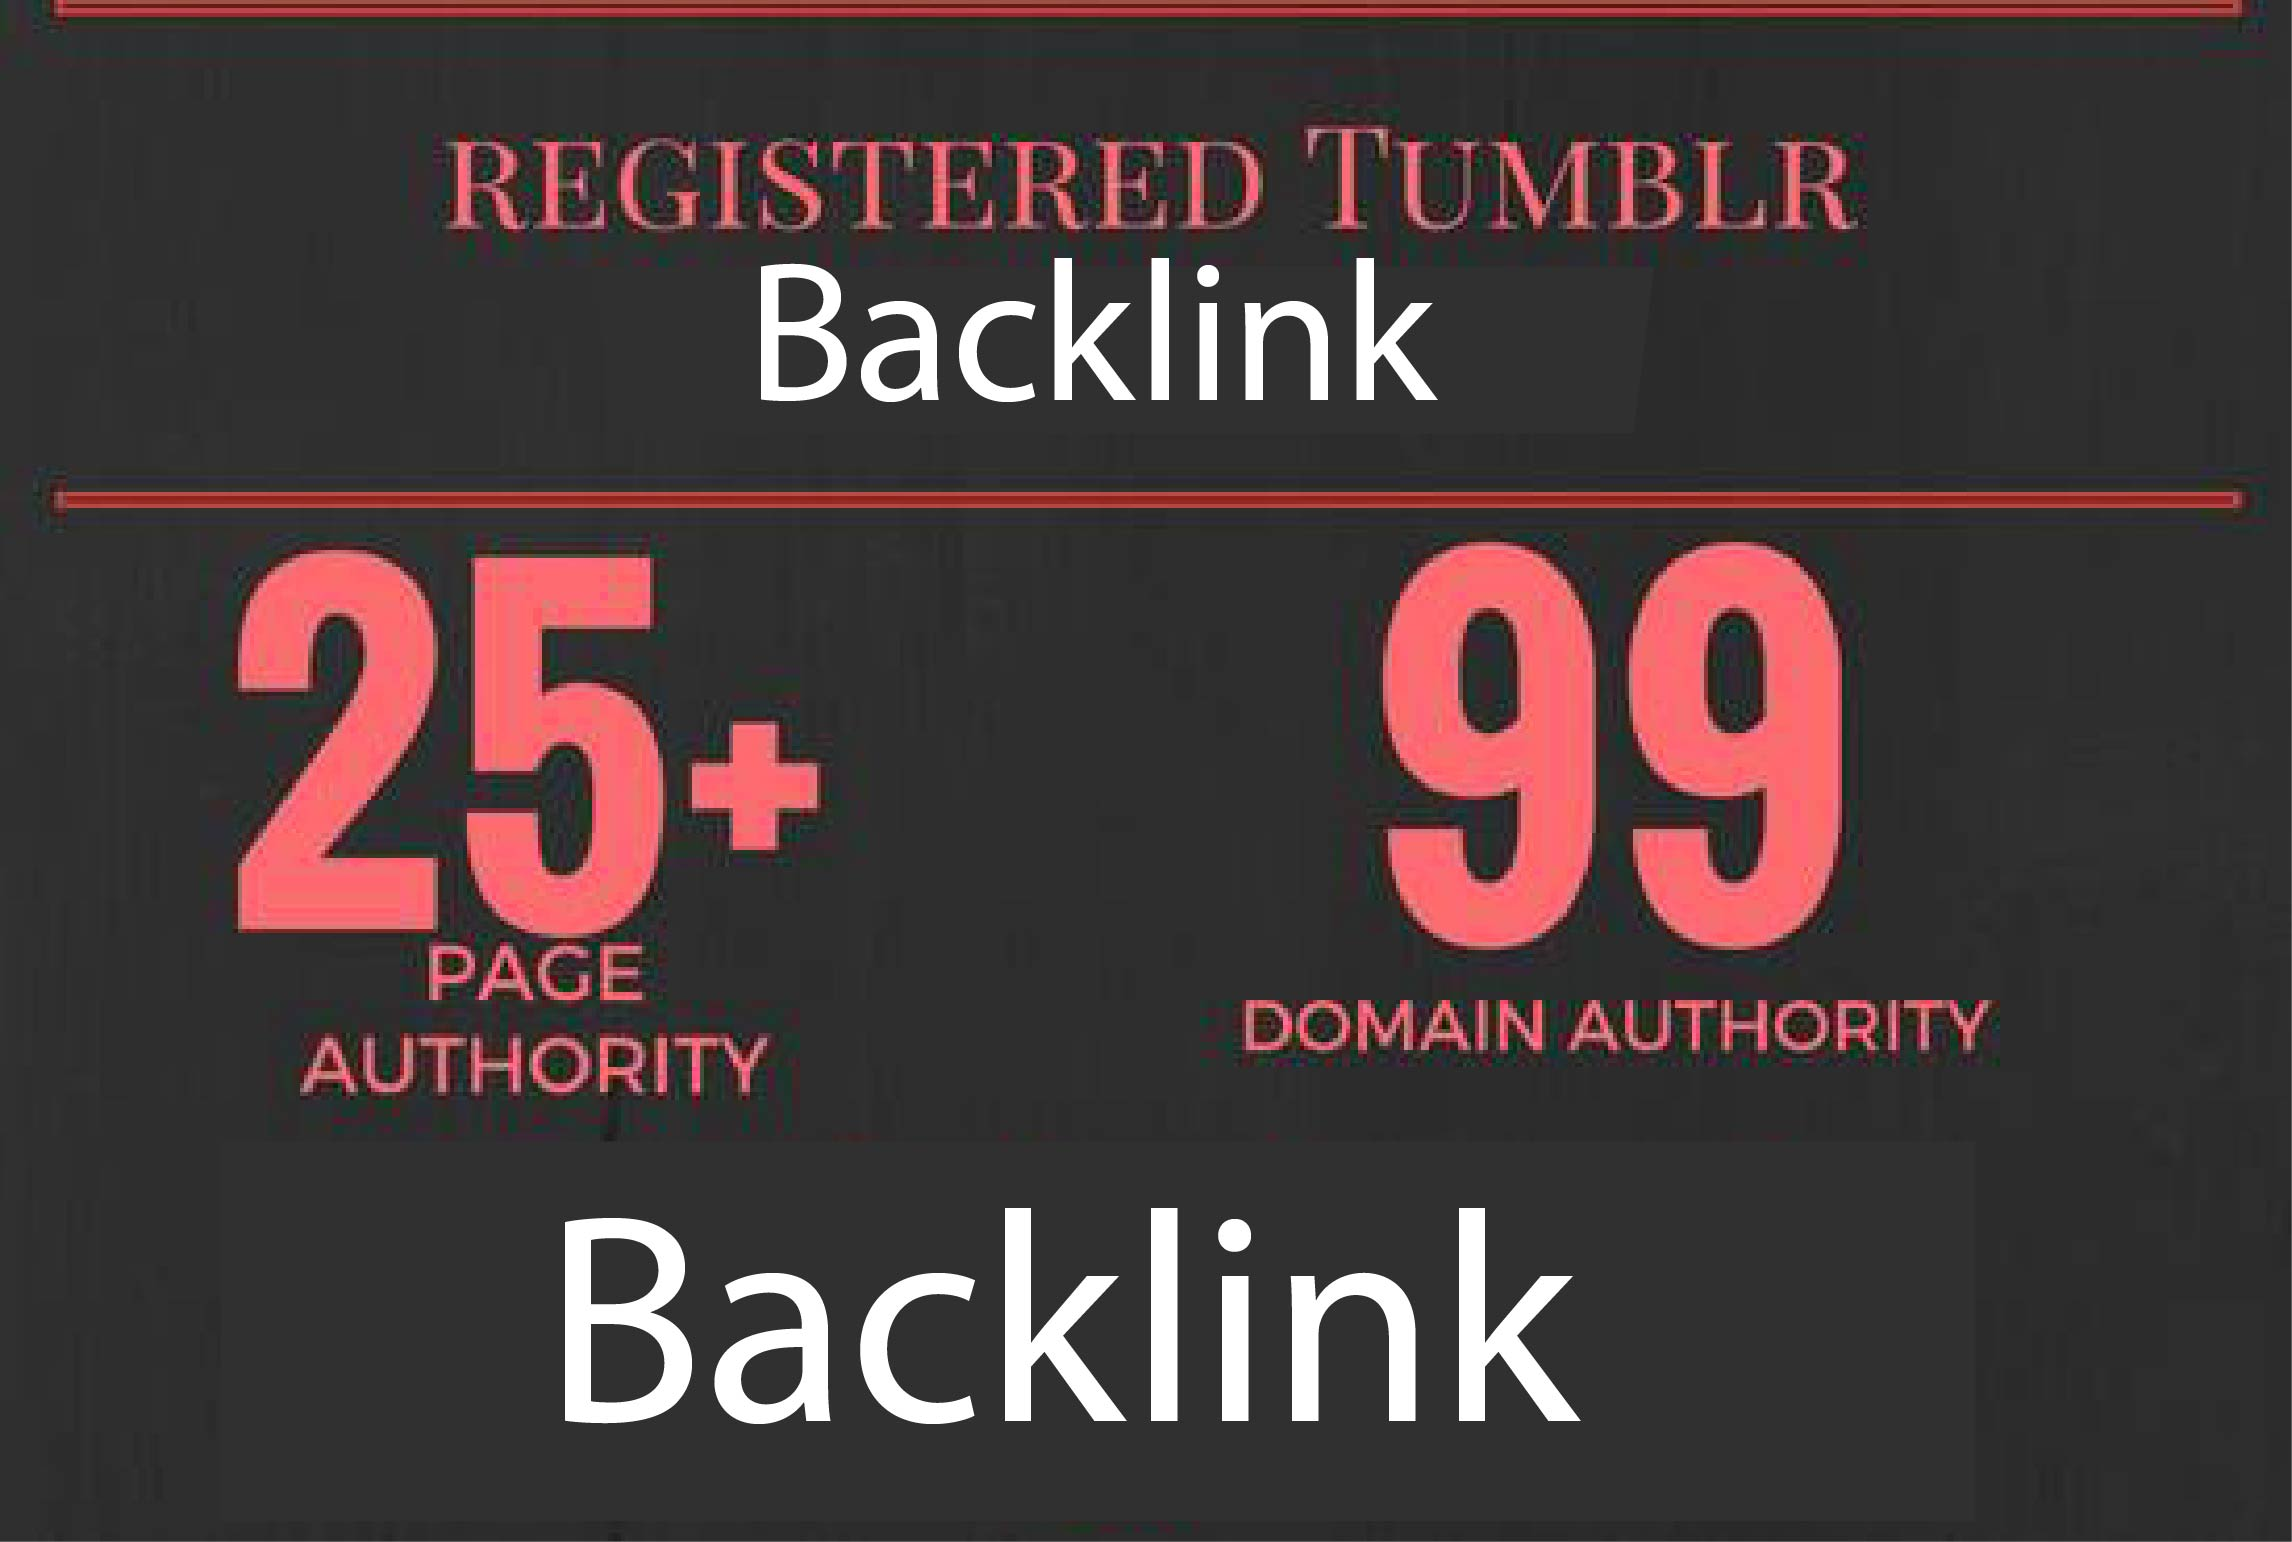 Build 10 Super Authority manual web 2,0 Backlink from PA 27+ Tumbler Blog Boost rank